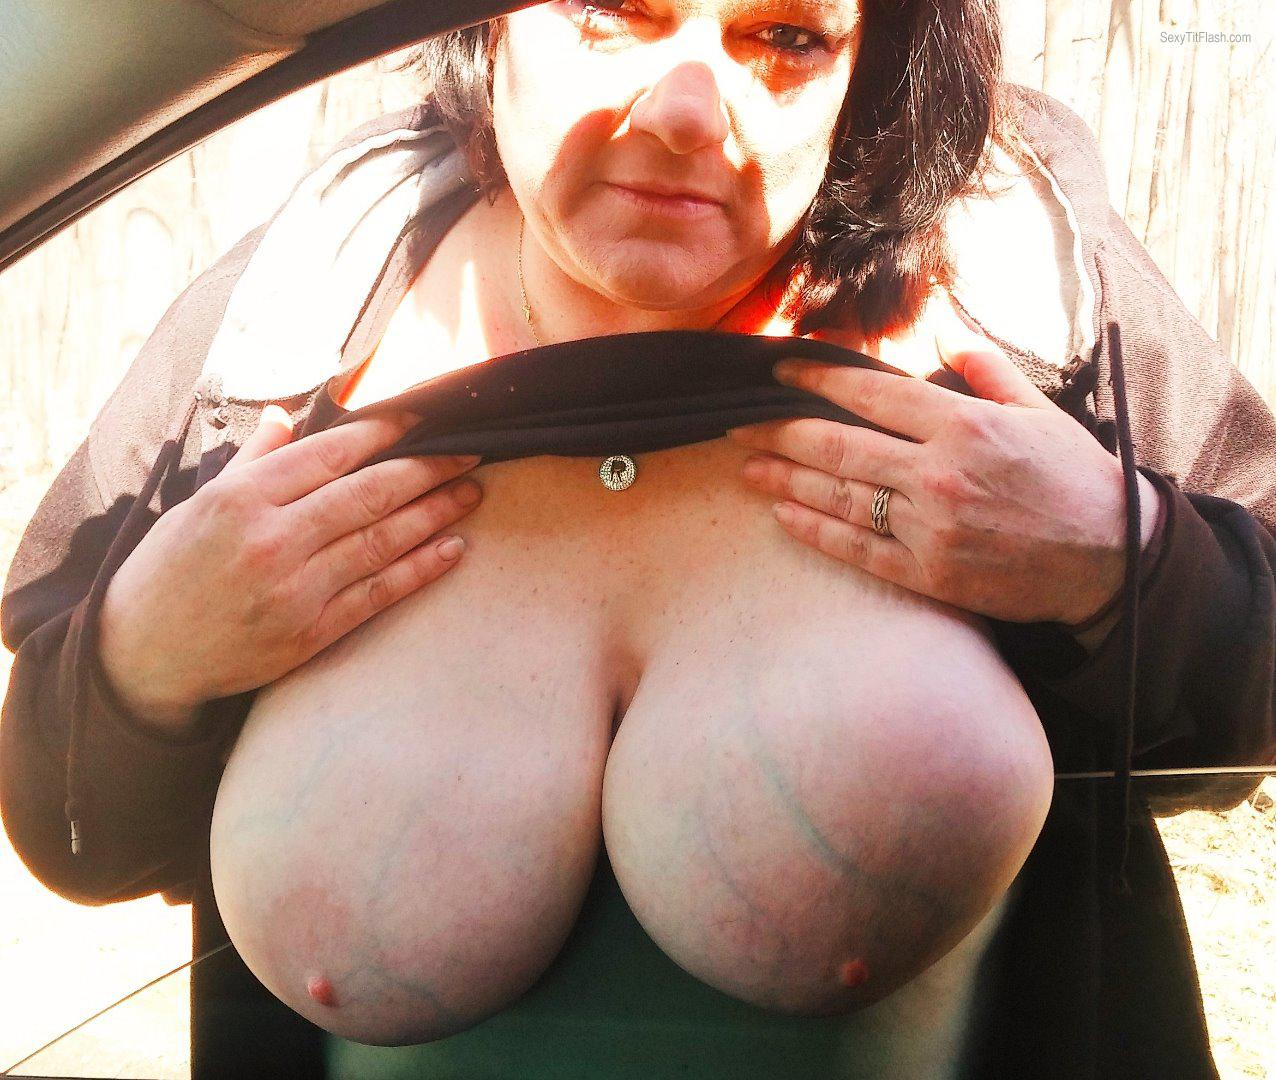 Tit Flash: My Very Big Tits - Topless Rachel from United States